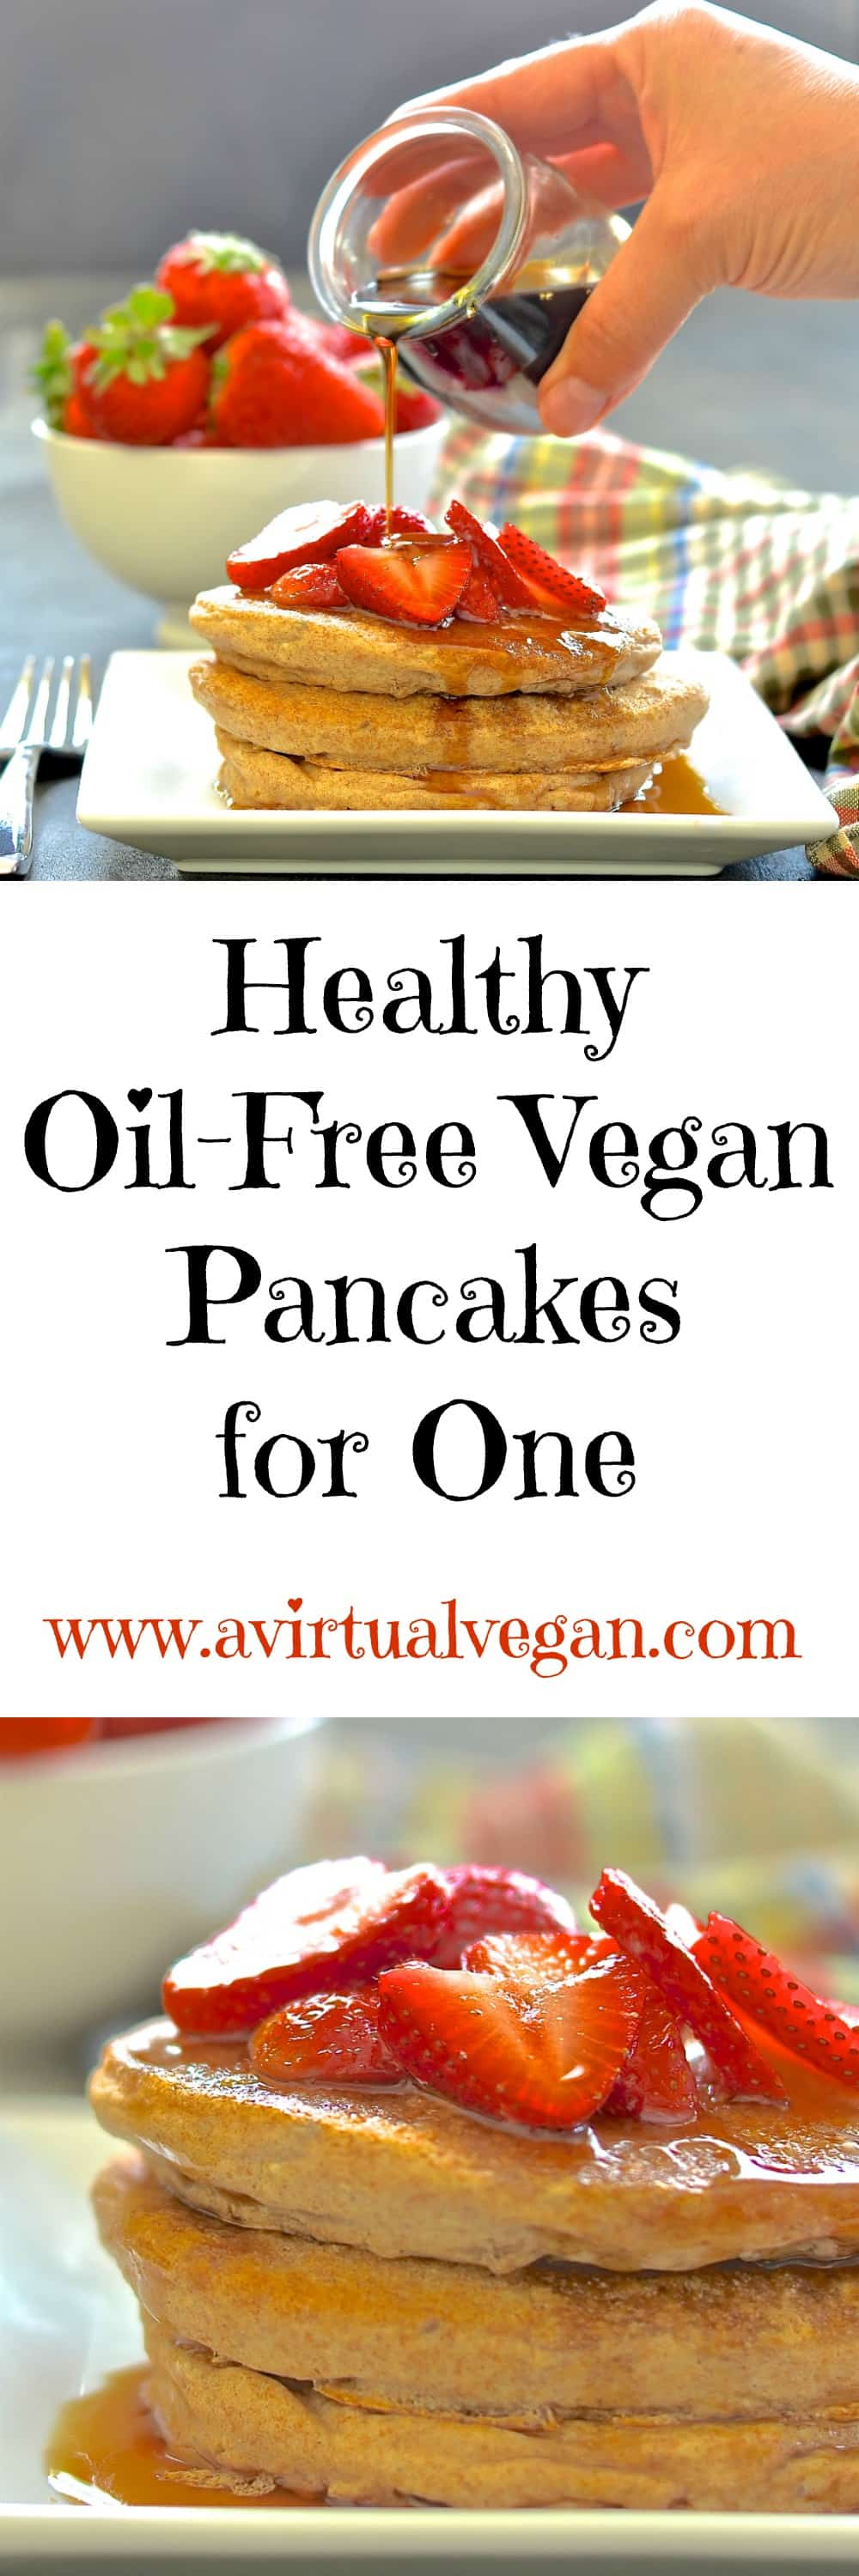 Make your breakfast special with these healthy but very delicious, beautifully soft, very fluffy, oil-free vegan pancakes for one. #pancakes #vegan #breakfast #veganpancakes